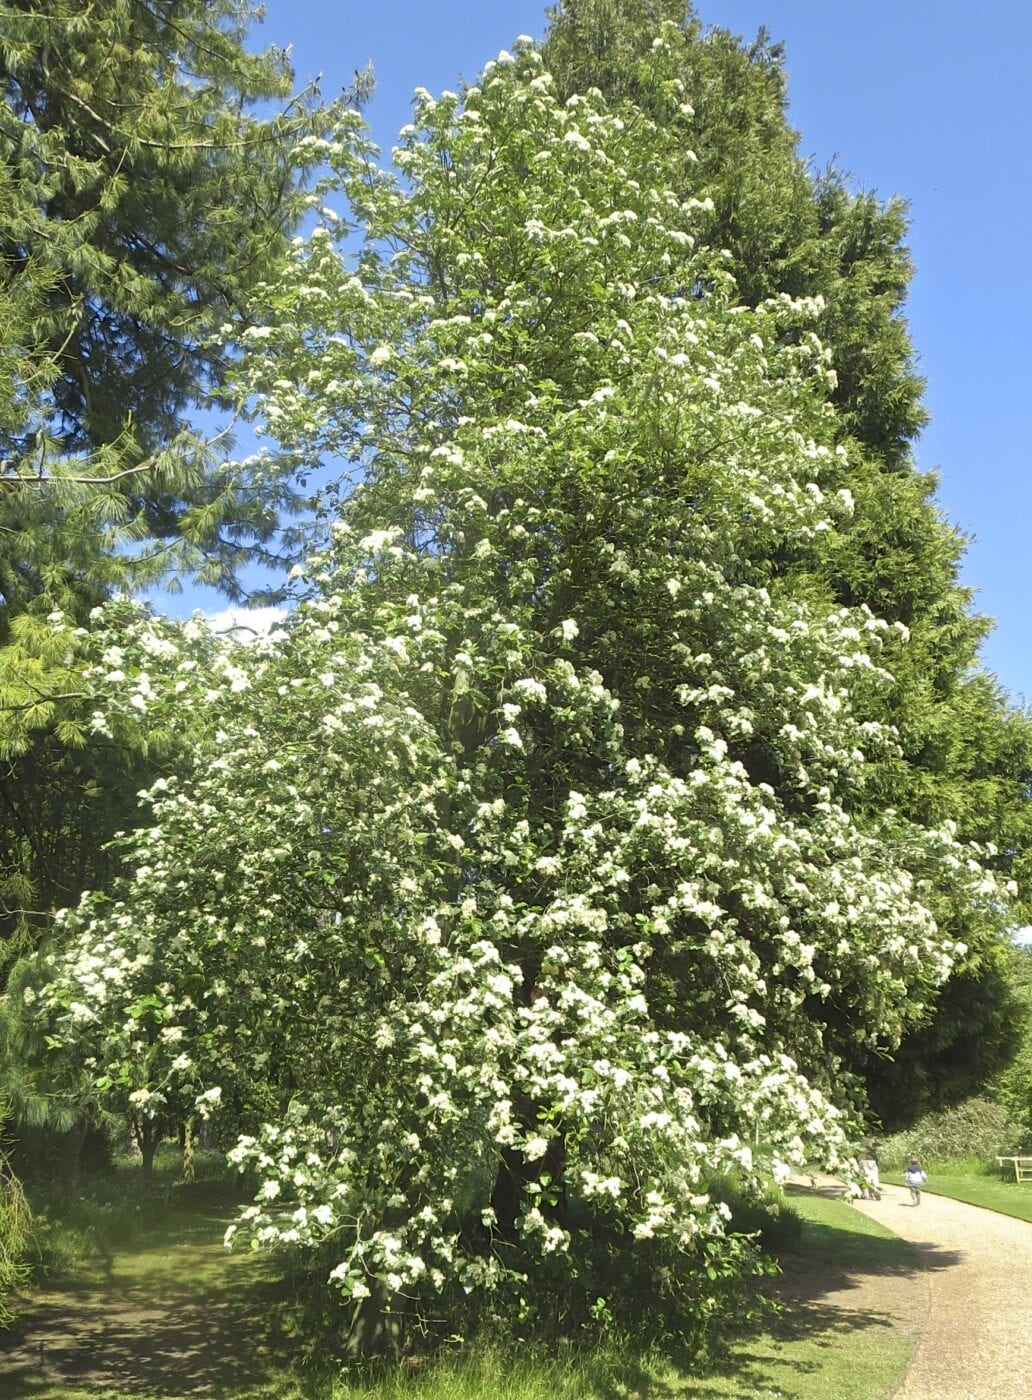 Swedish Whitebeam tree